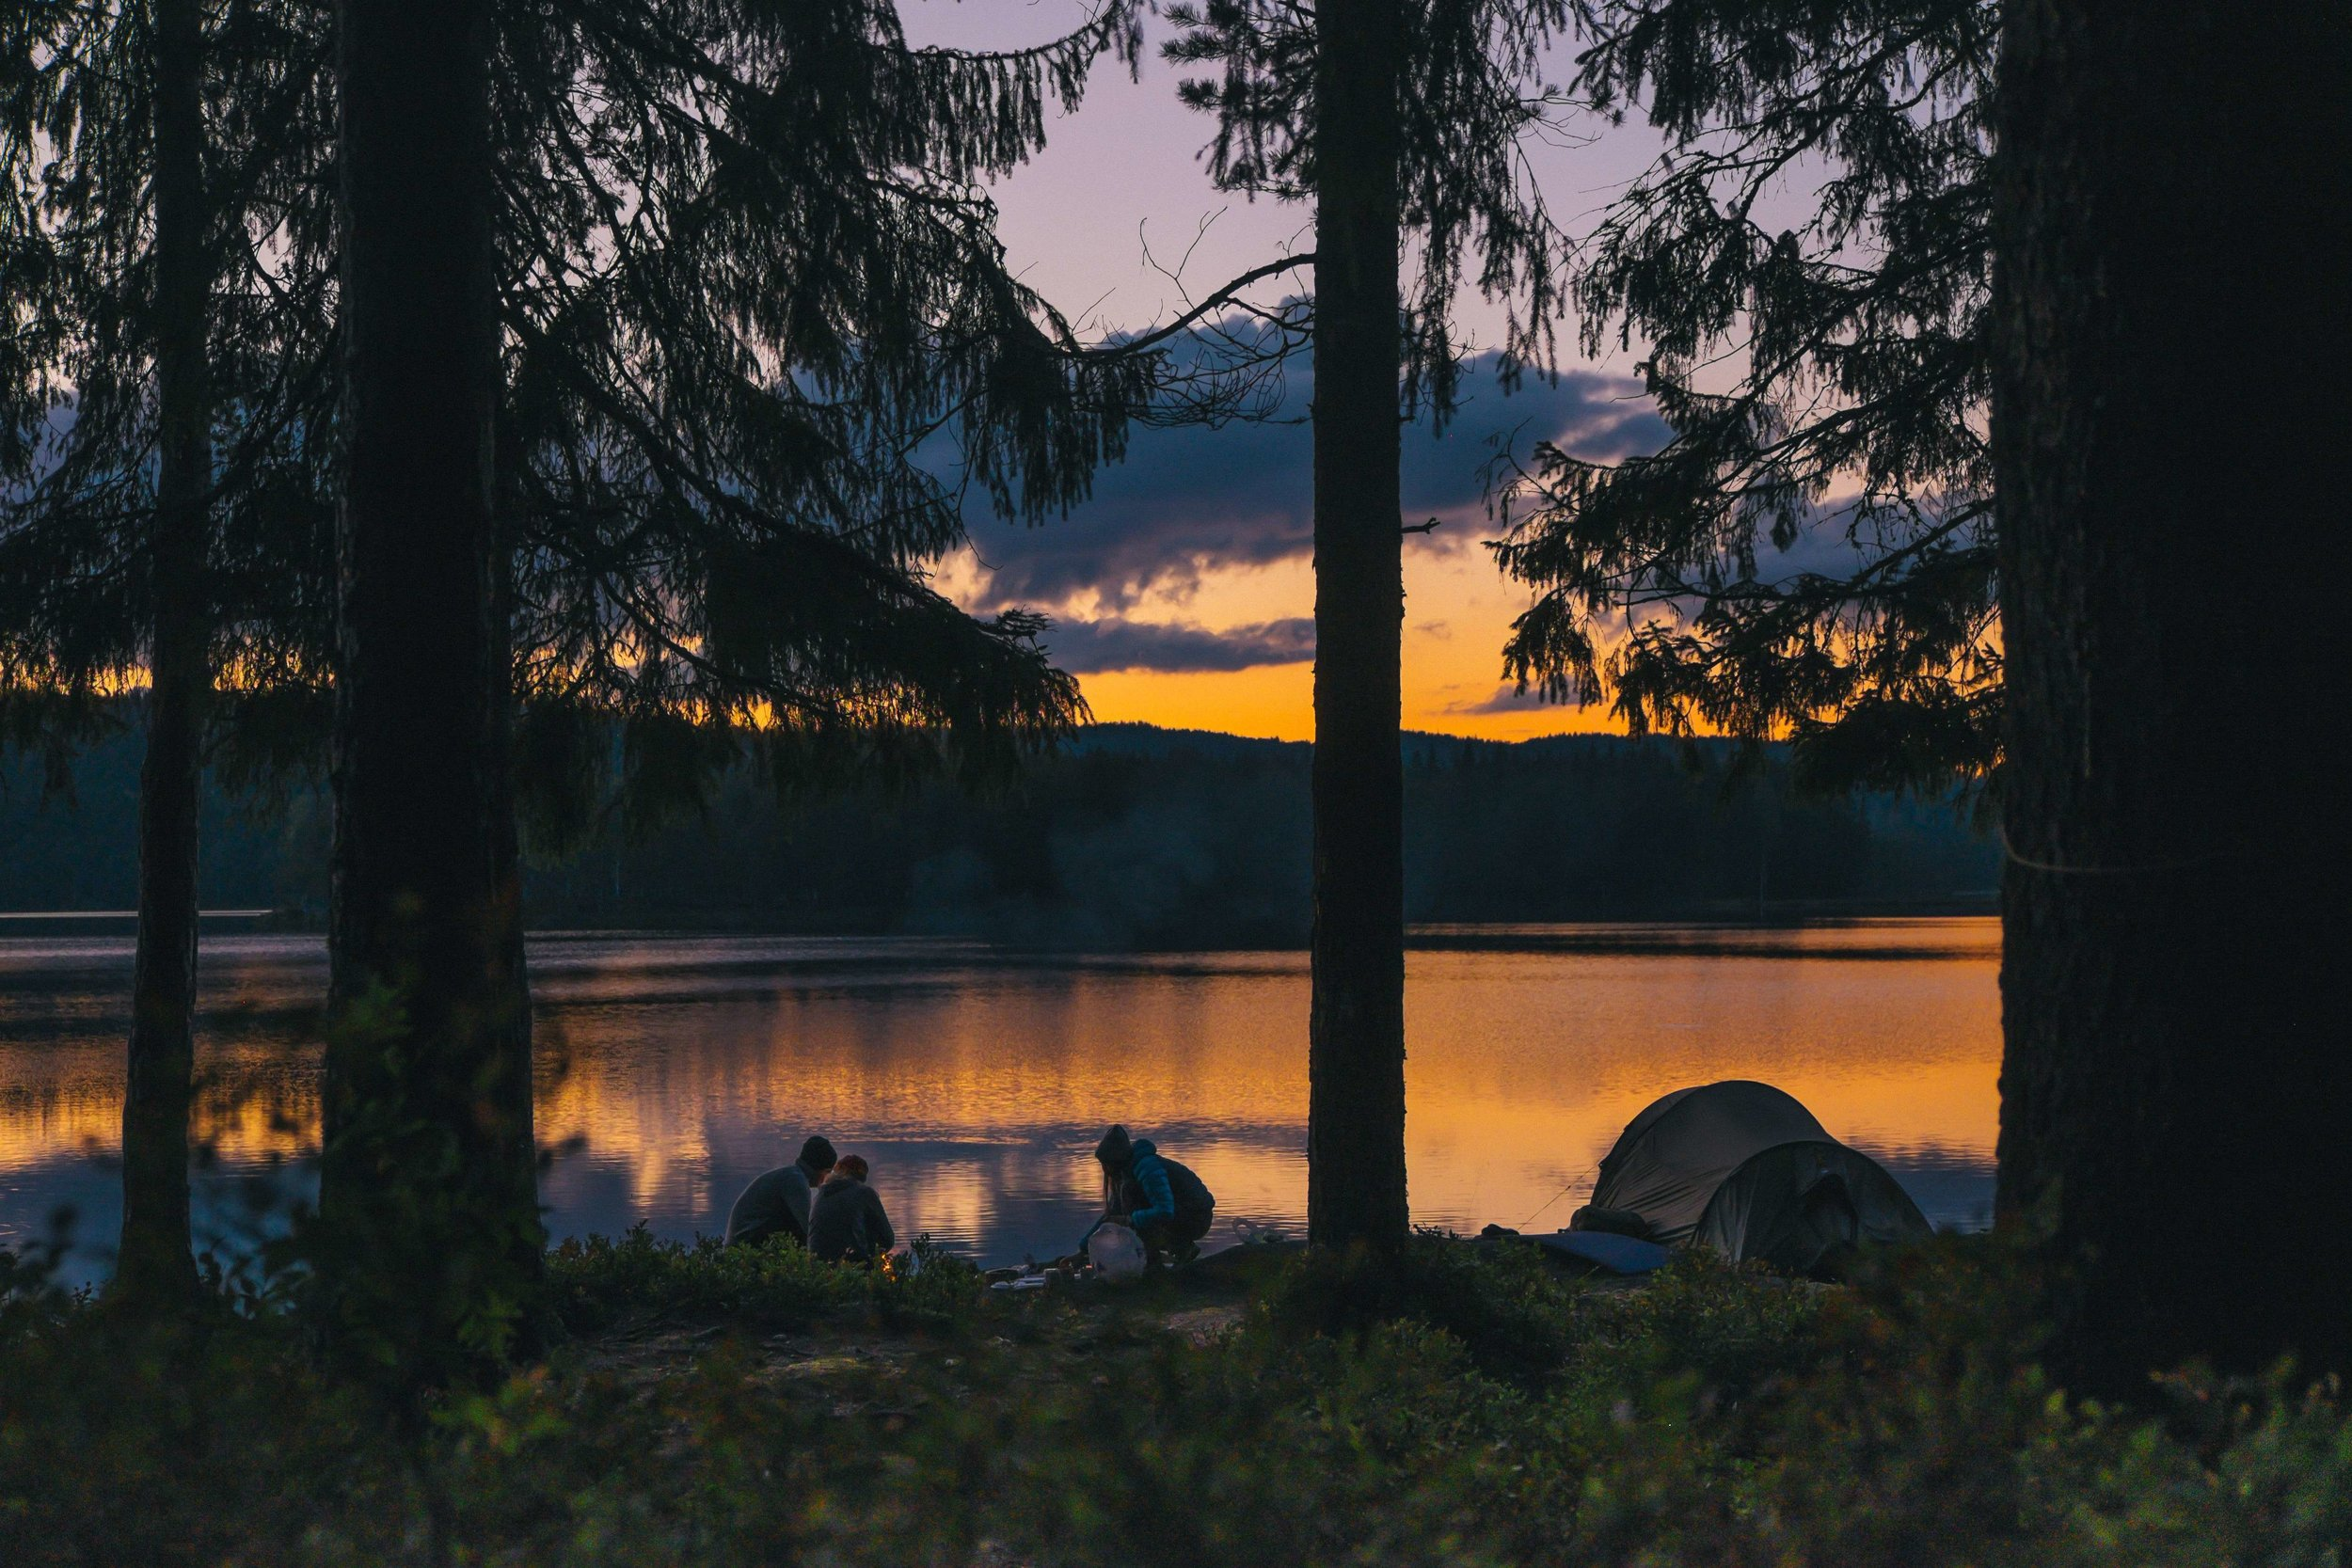 Moist campsites or areas that are muddy, like the totally not Leave No Trace campsite shown in this photo, will benefit most from a tent footprint.   Photo by    Andreas Rønningen    on    Unsplash